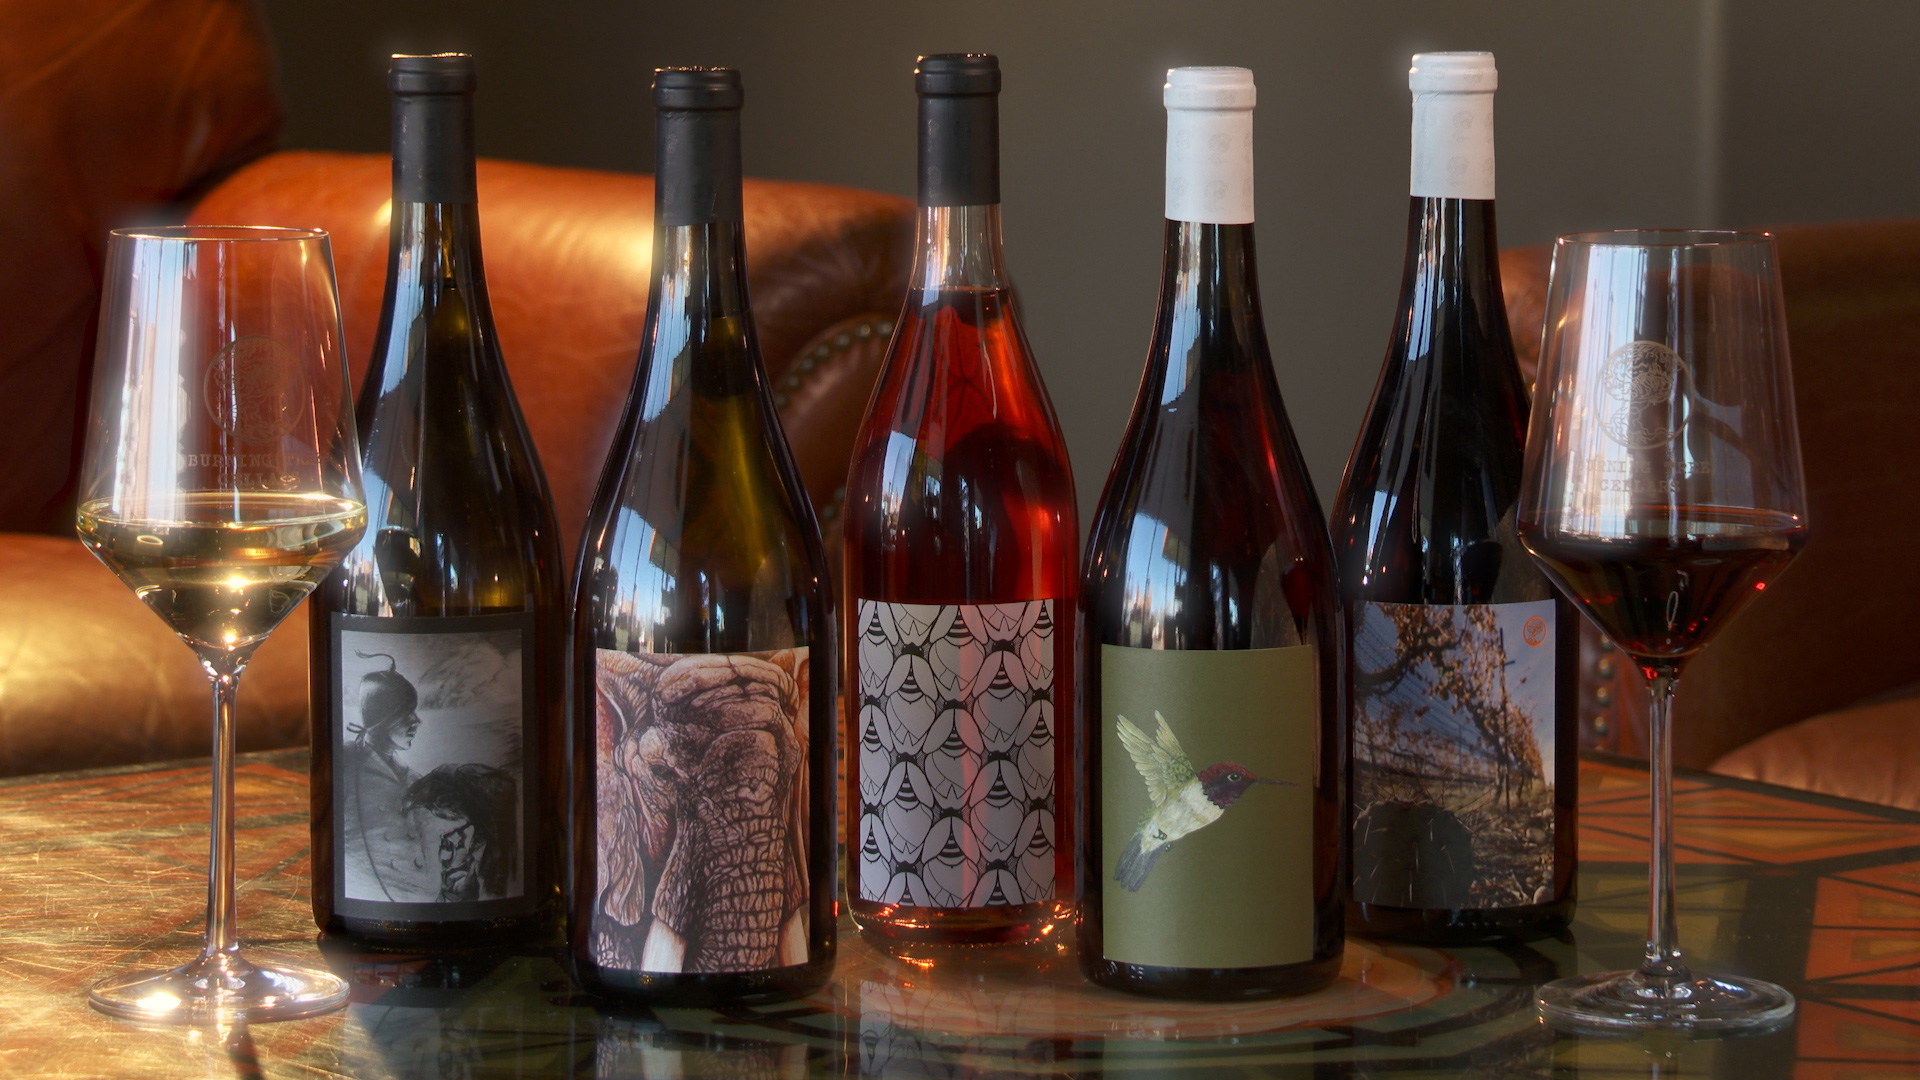 Wine bottles available at Burning Tree Cellars